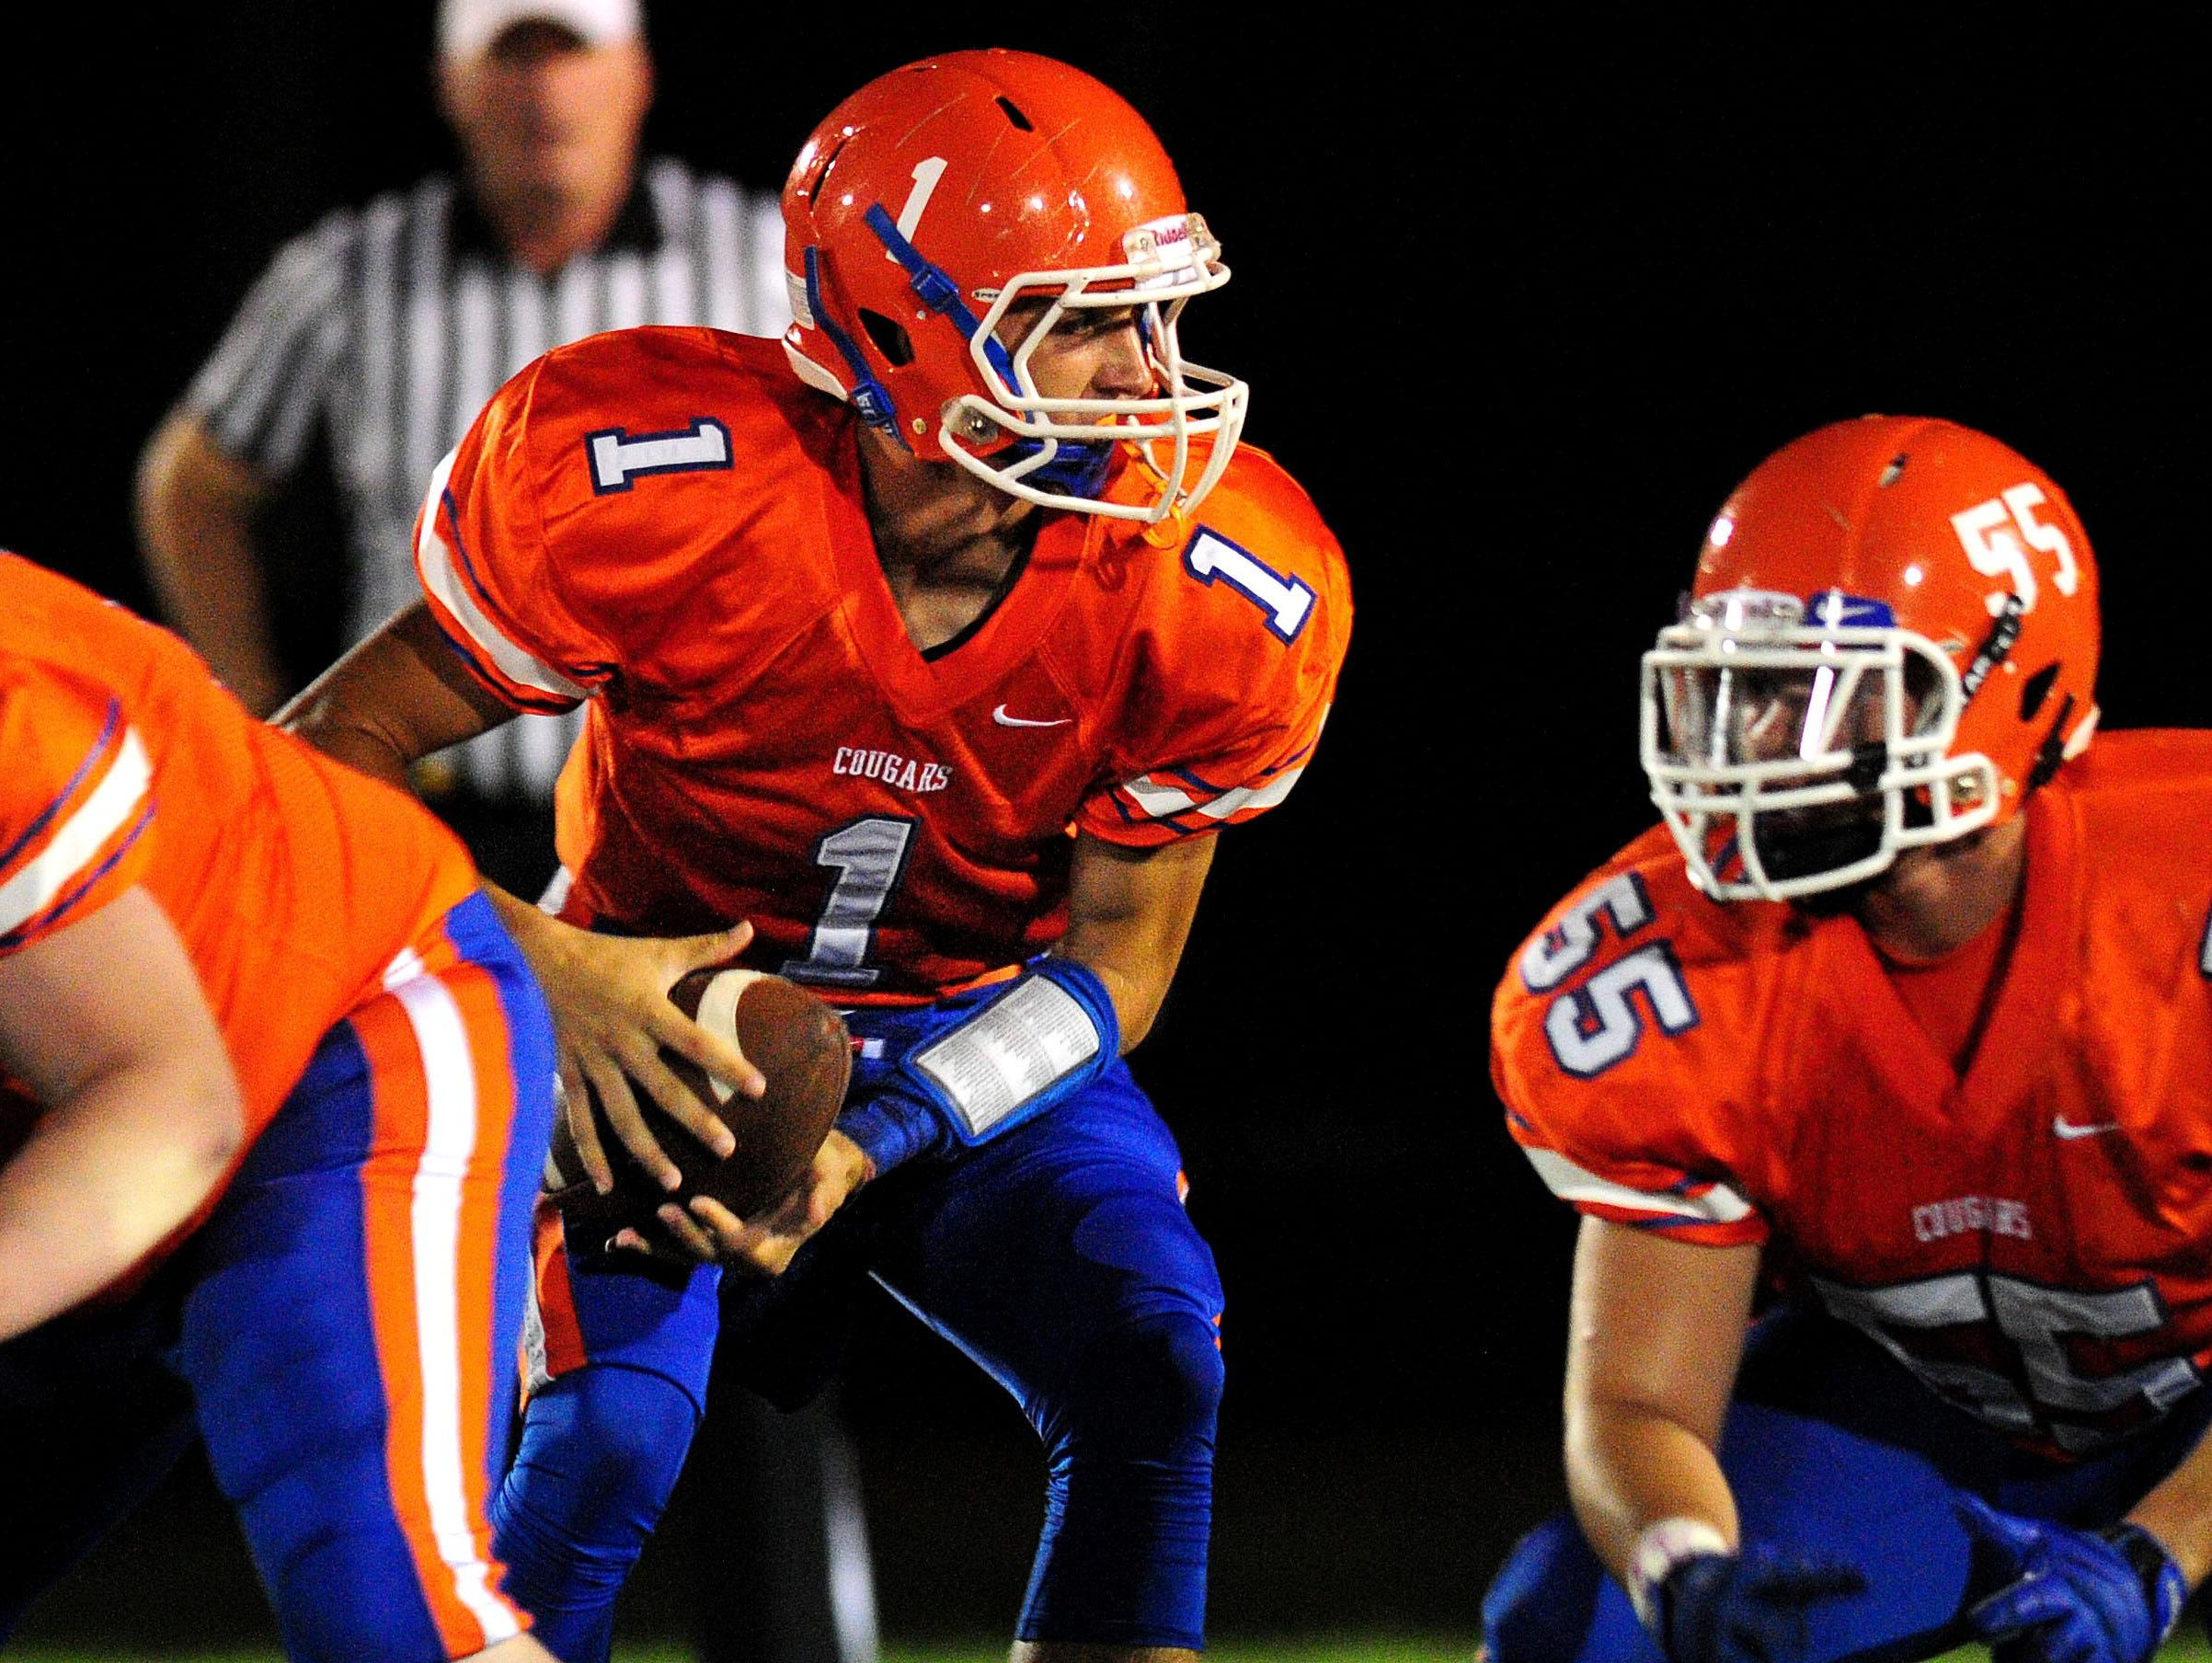 Wiley Cleland returns this season as Columbia Academy's starting quarterback.